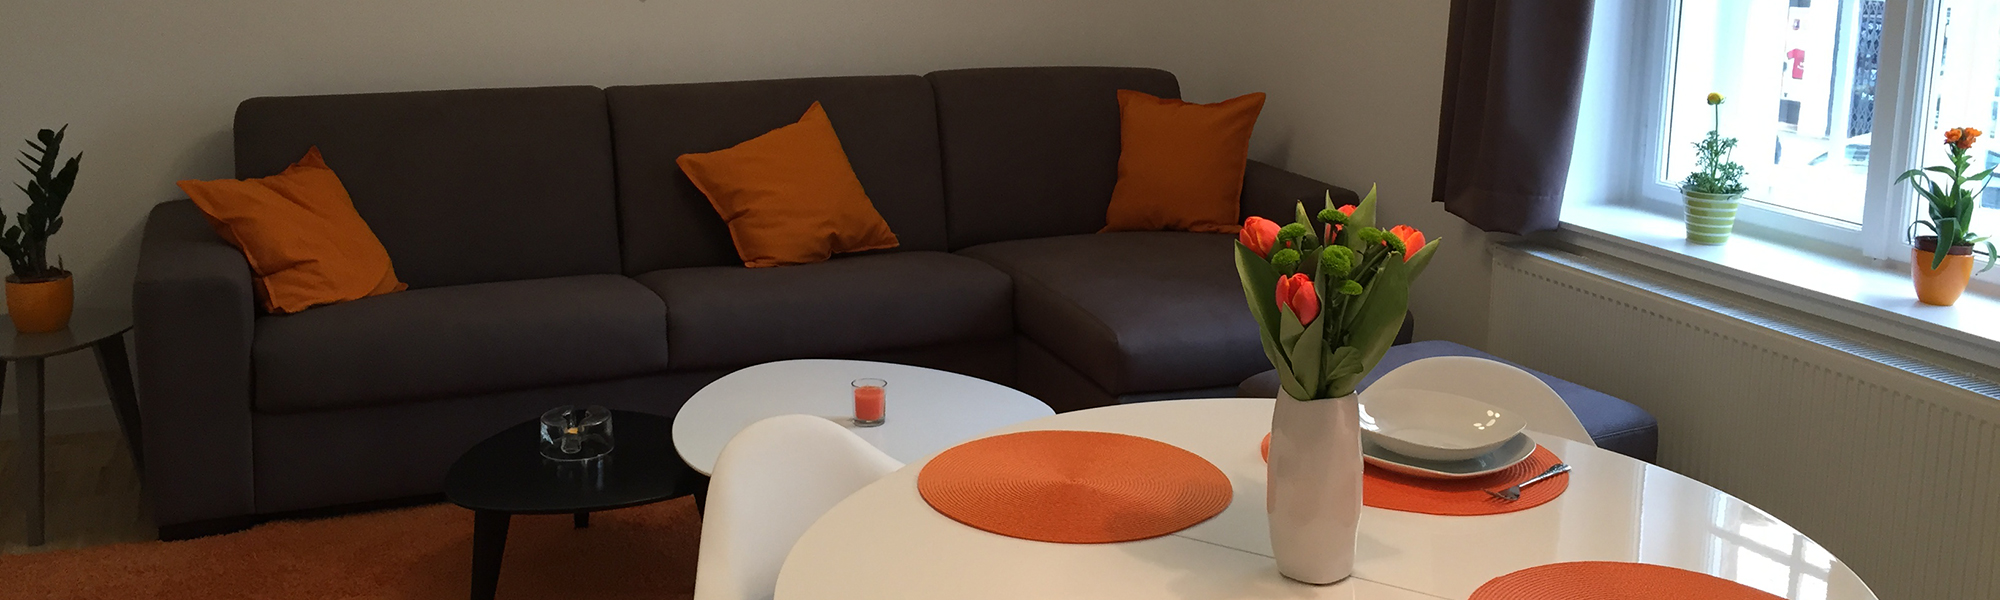 CITY & STYLE APARTMENTS ZAGREB The ideal starting point for all the major sights - Cathedral, Ban Jelacic Square, Kaptol, Gradec, Maksimir...